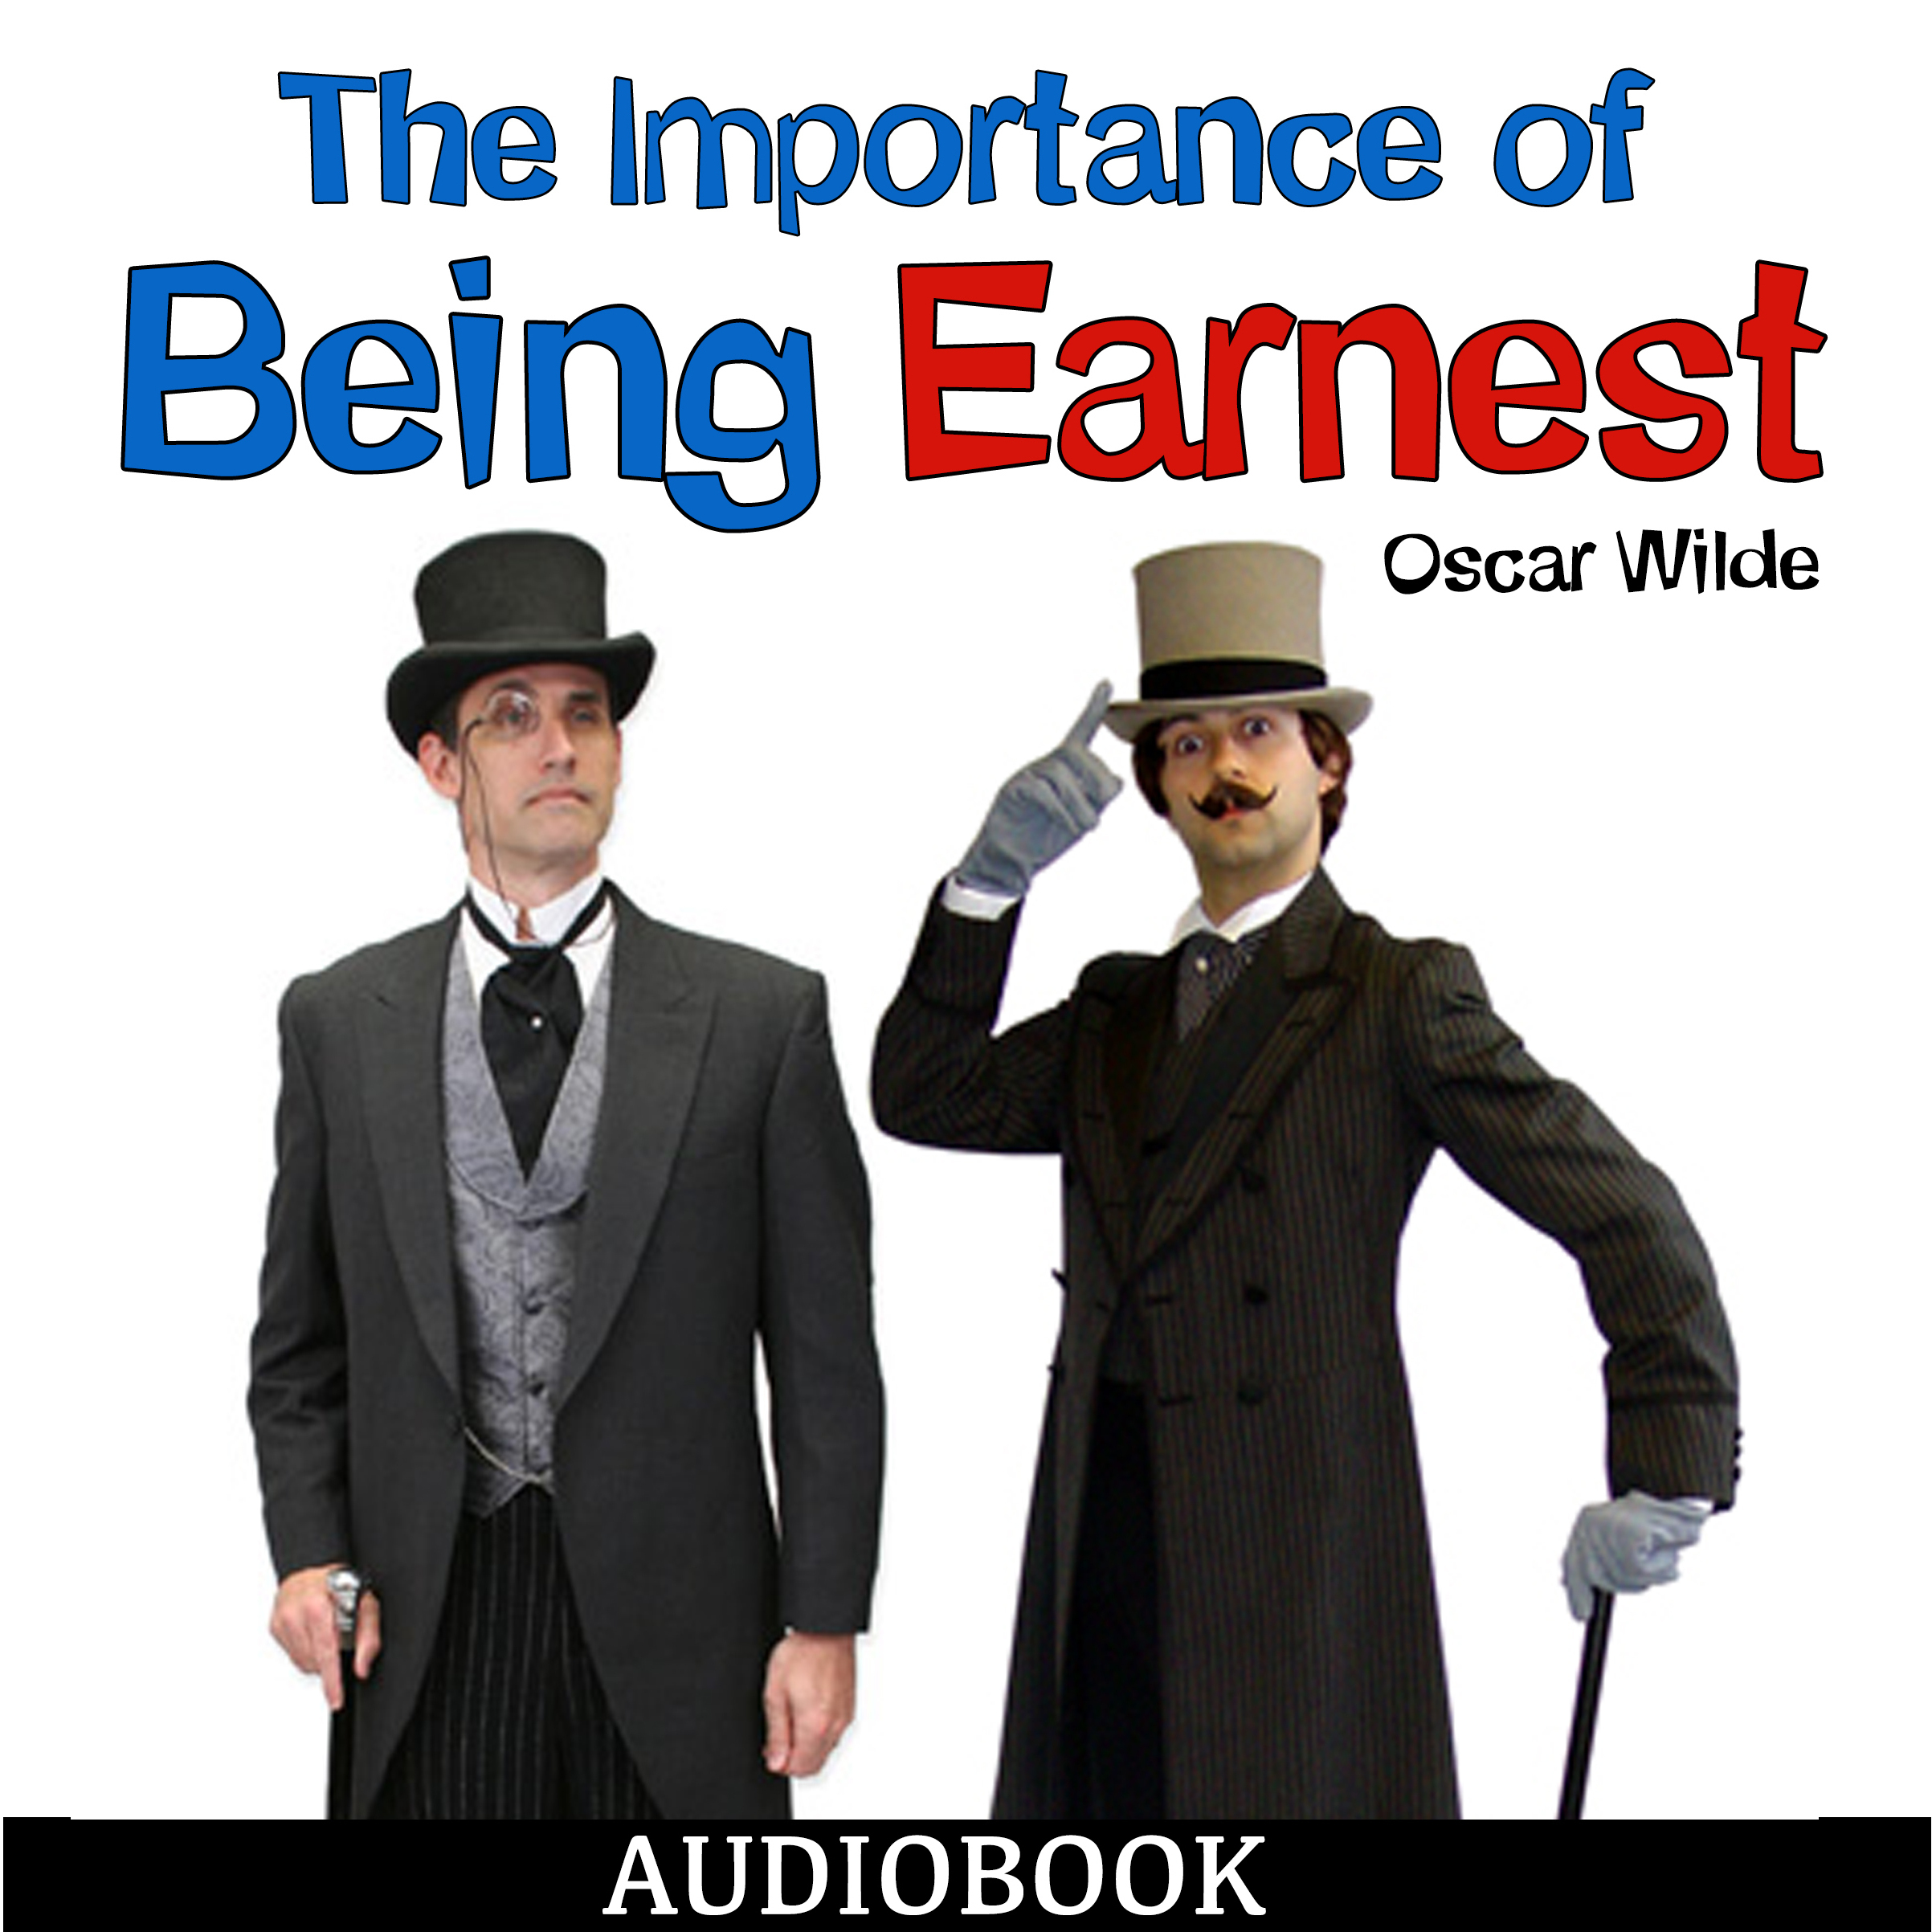 an analyses the importance of being The importance of being earnest: themes - theme analysis / quotes - quotations analysis by oscar wilde.